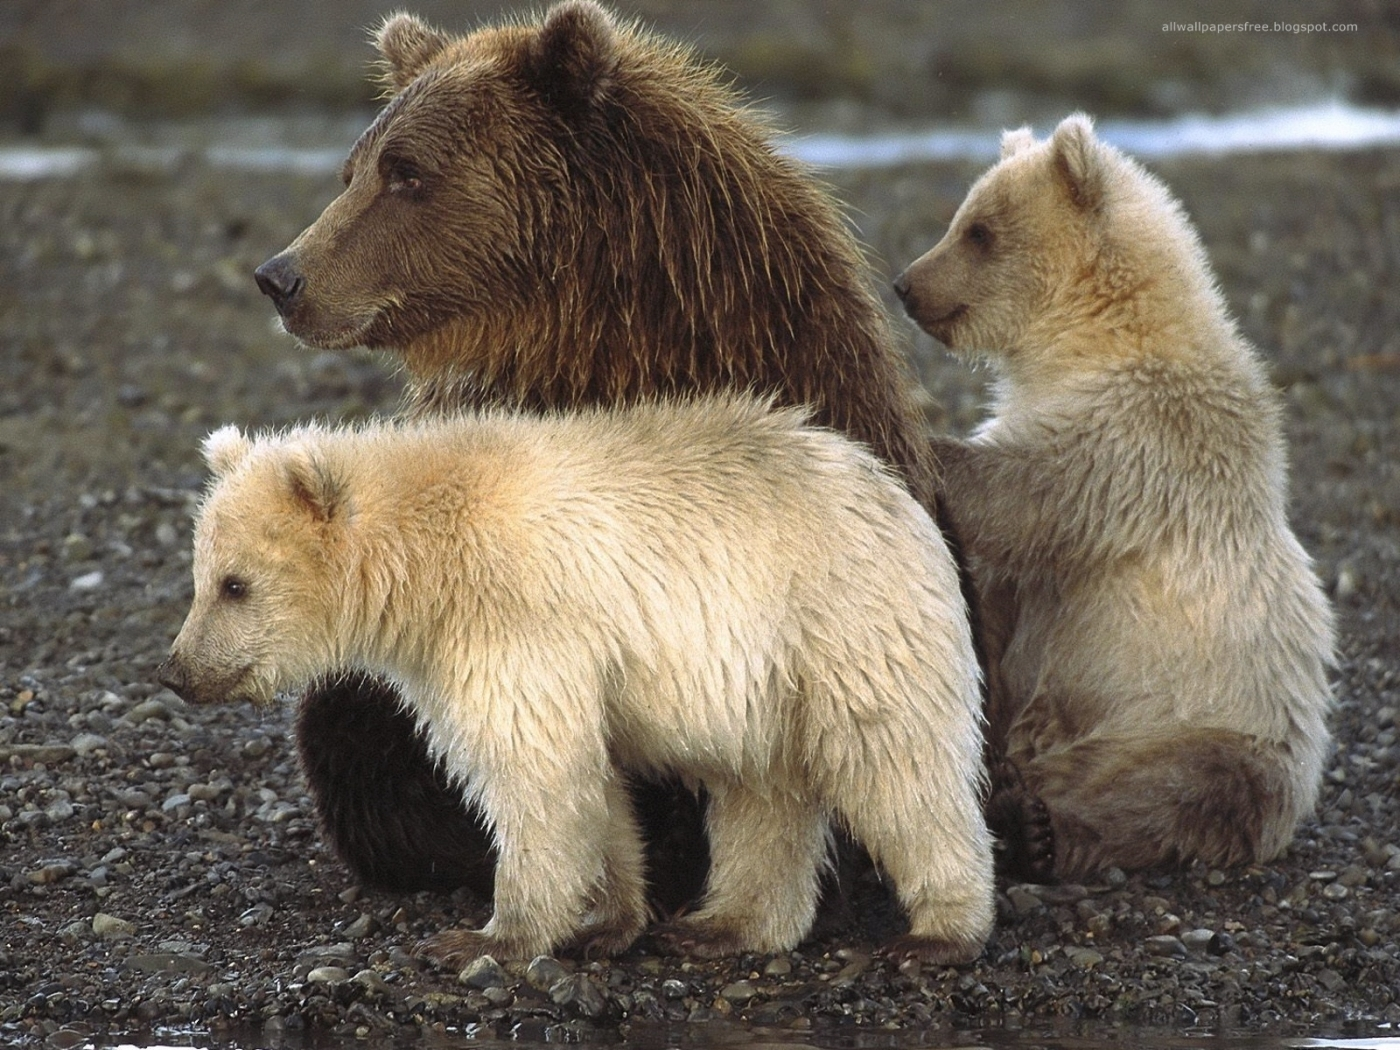 50287 download wallpaper Animals, Bears screensavers and pictures for free